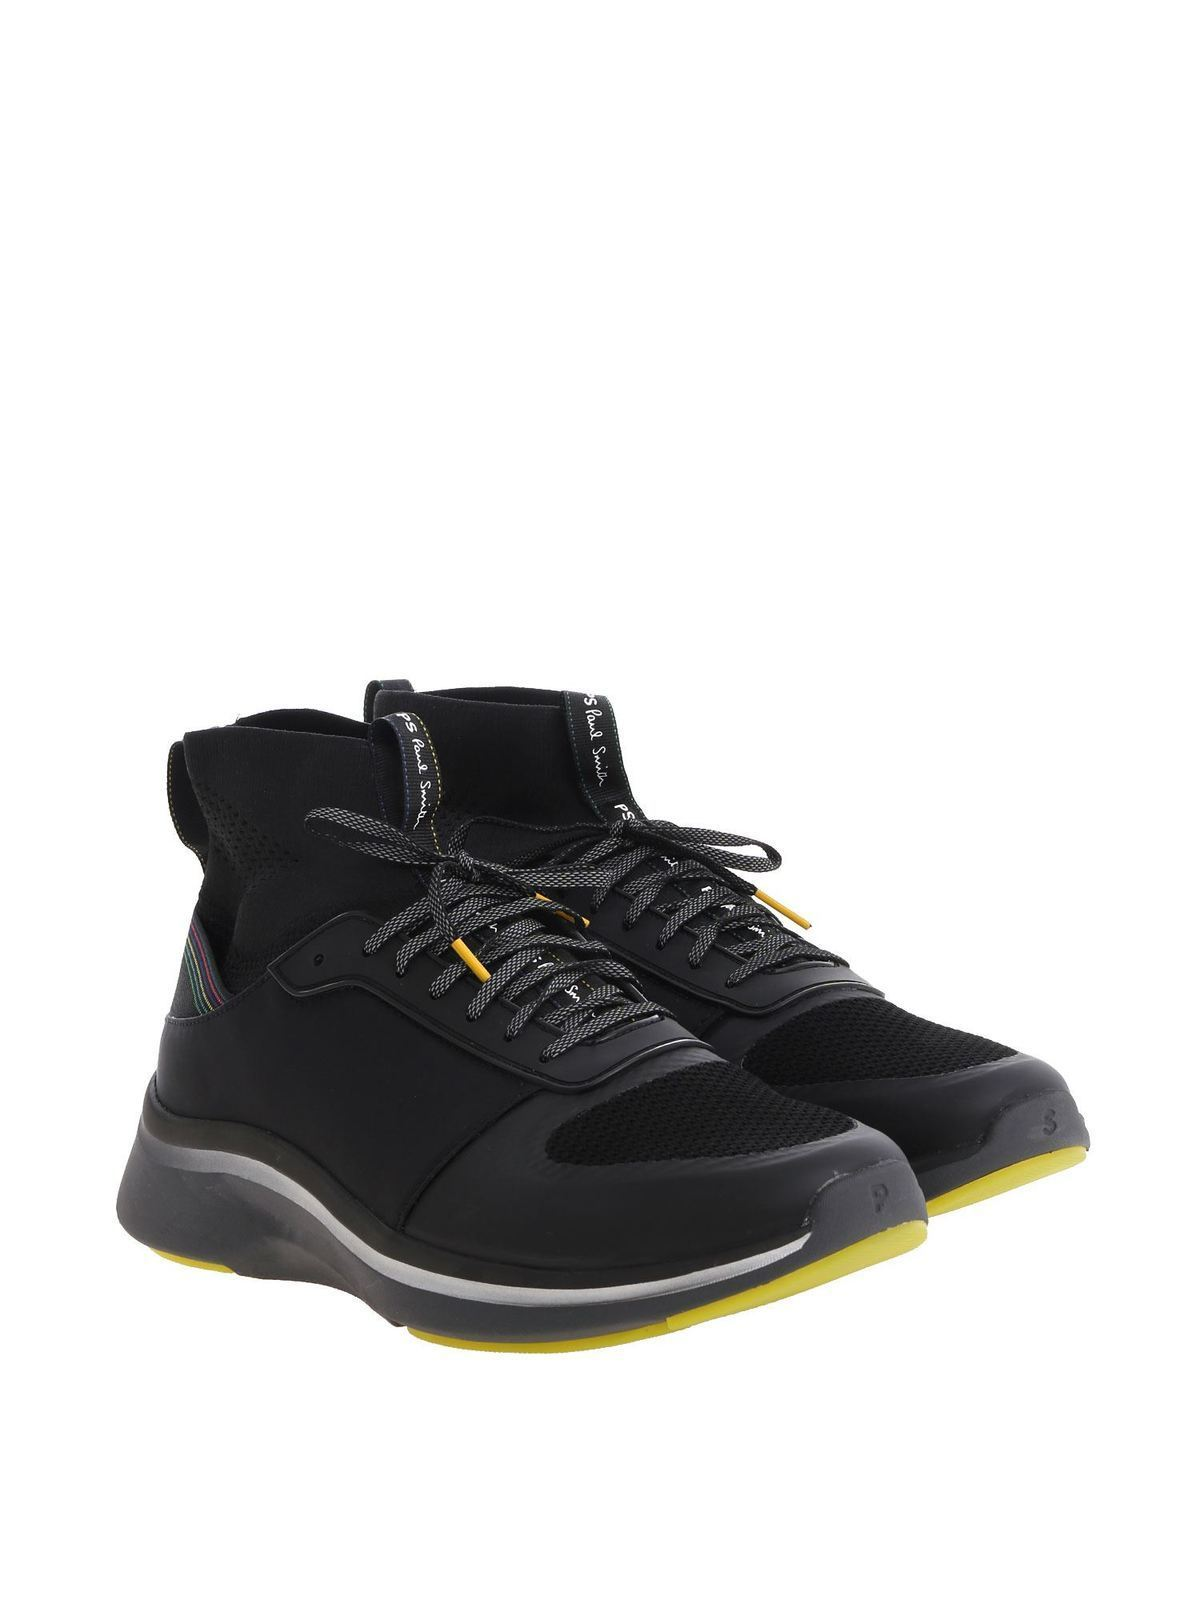 Ps by Paul Smith - Black \